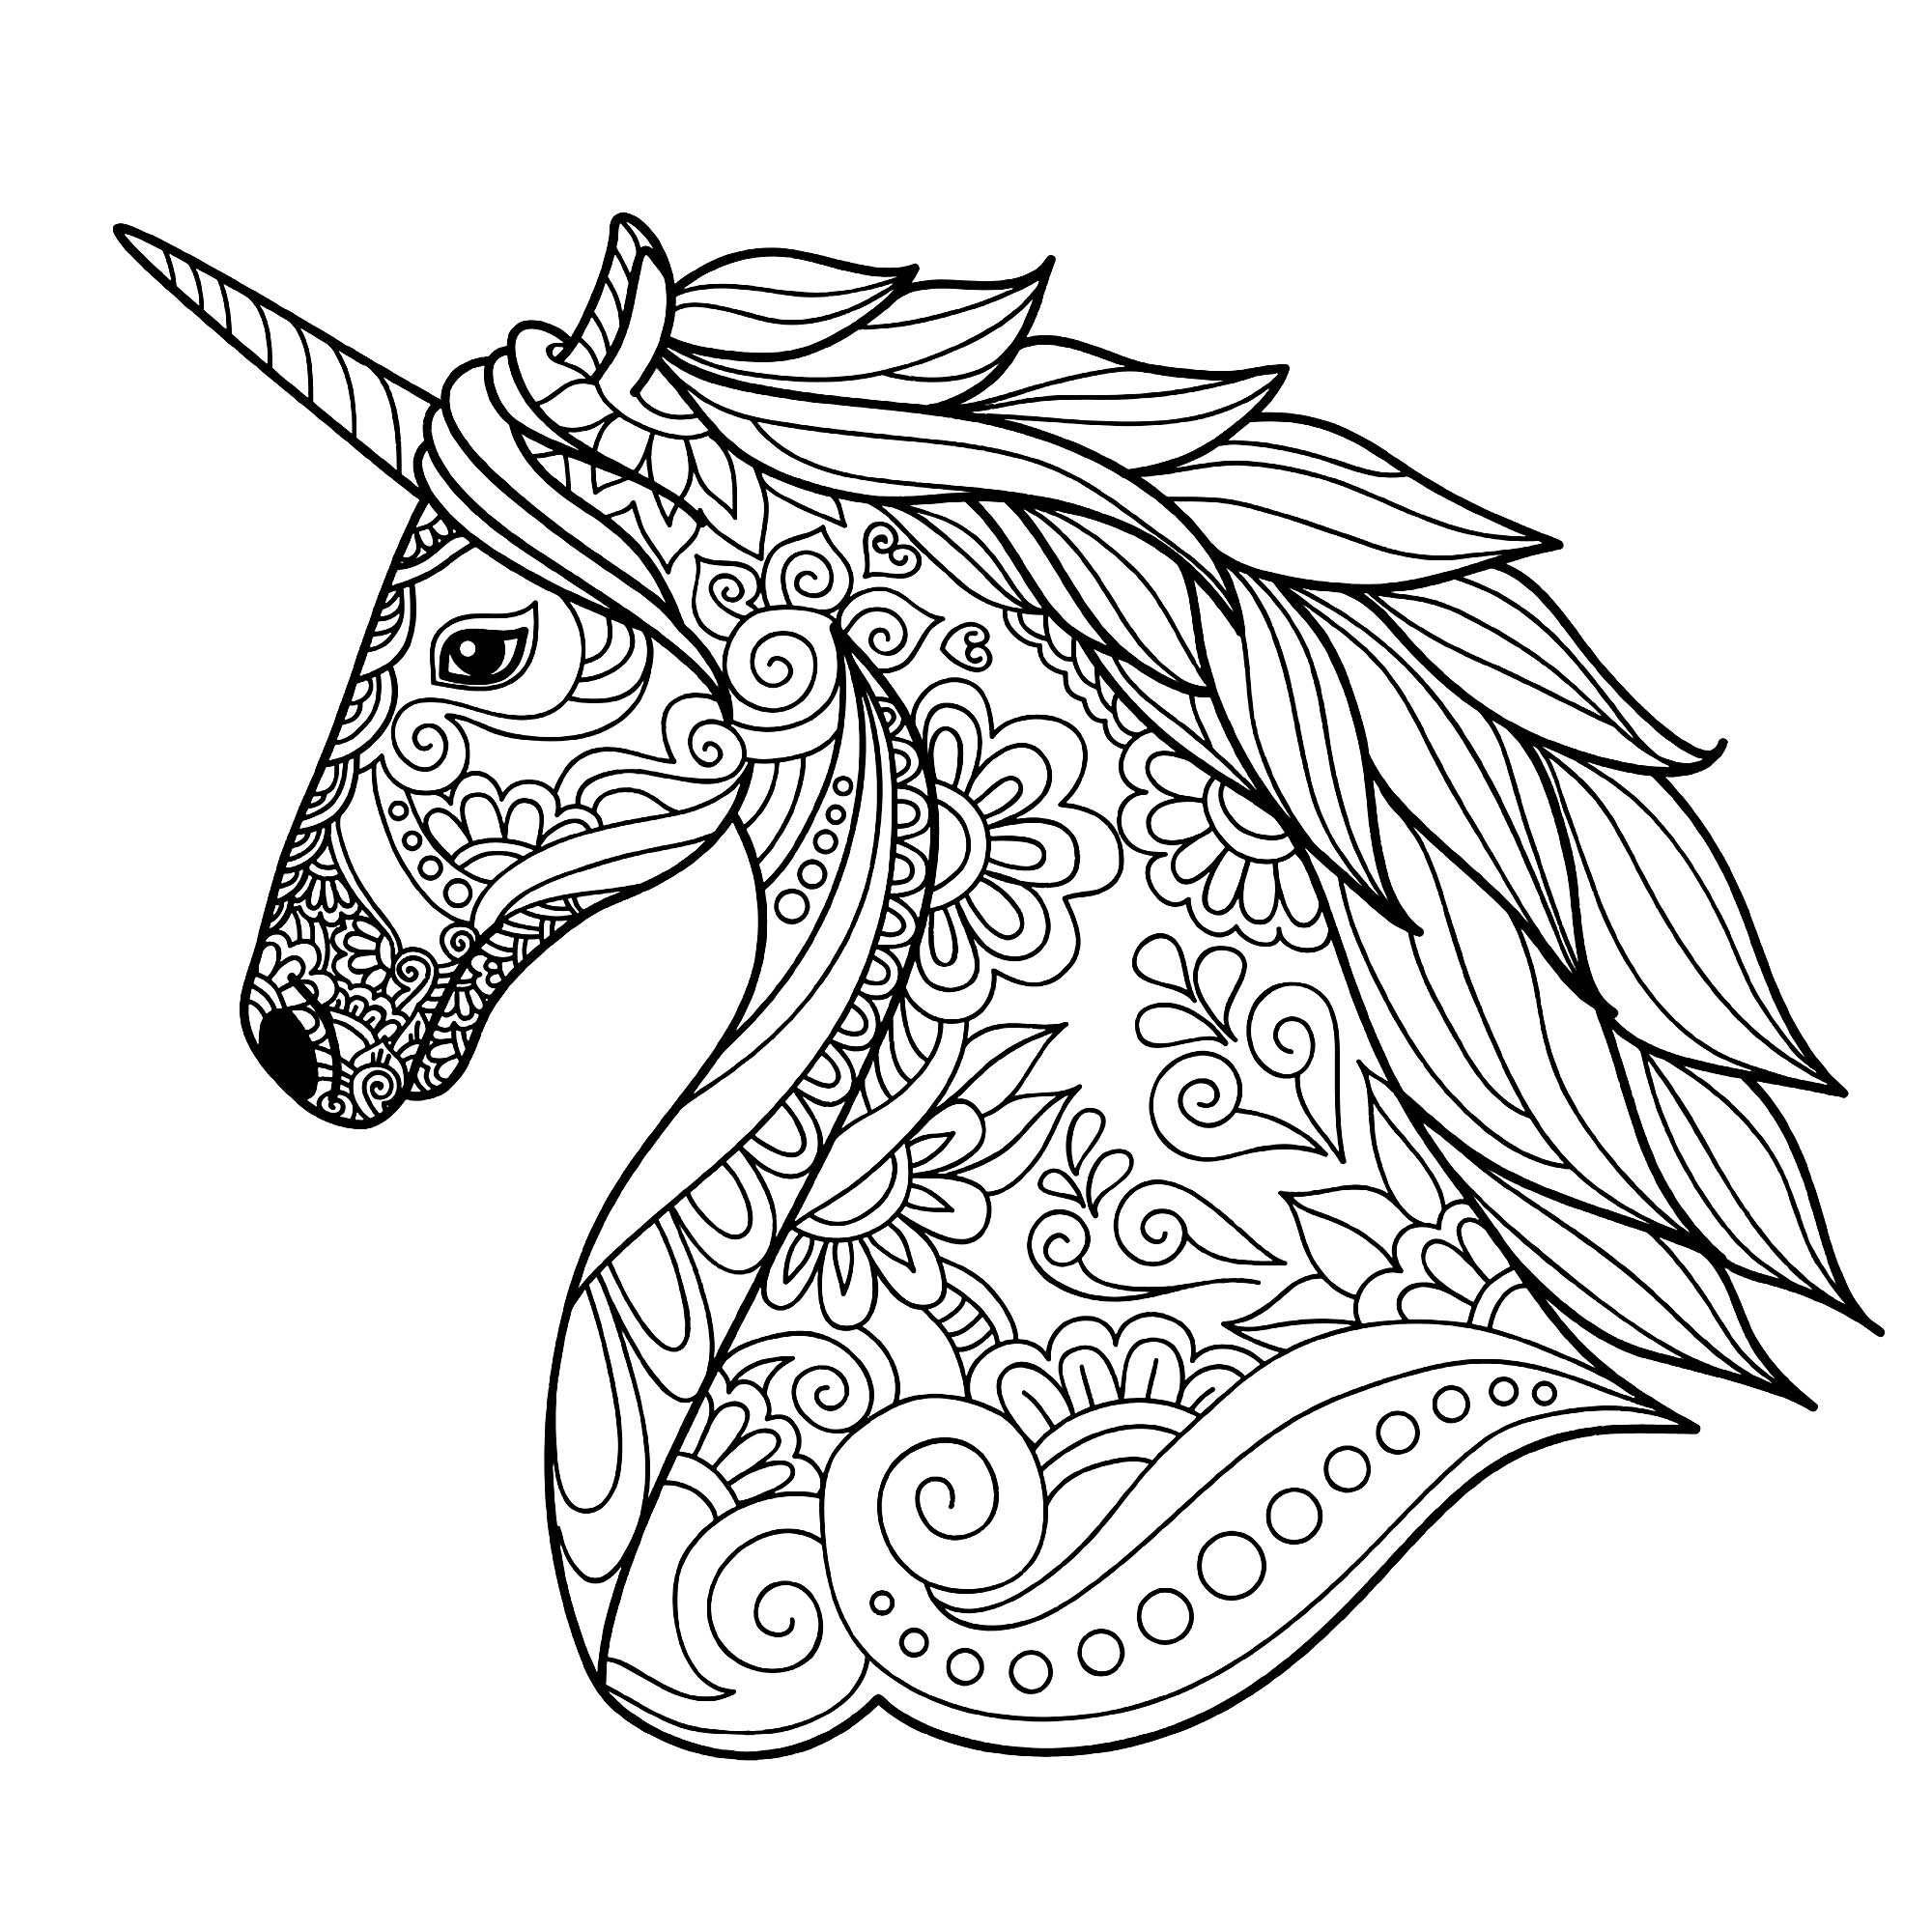 Unicorns coloring page to print and color for free